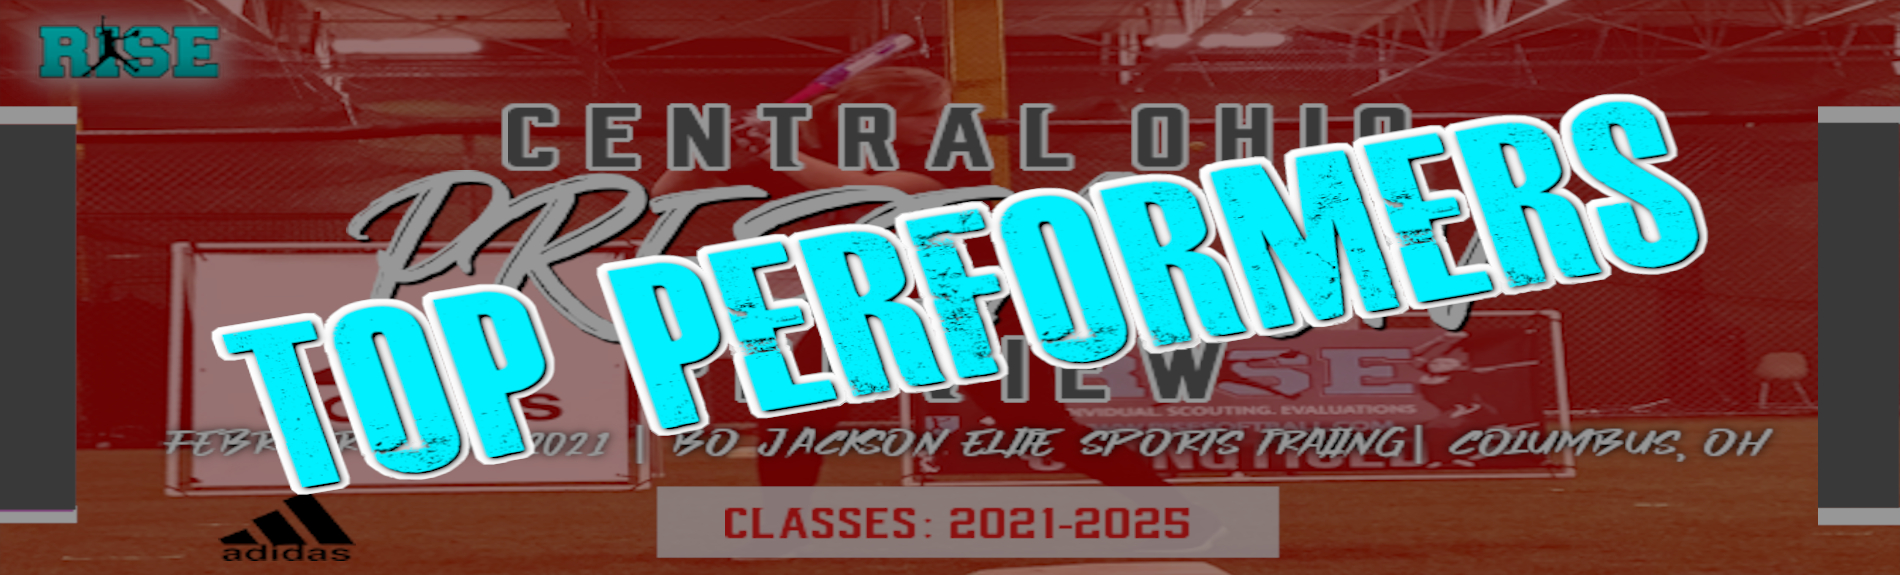 "Central Ohio Preseason Preview ""TOP PERFORMERS"""